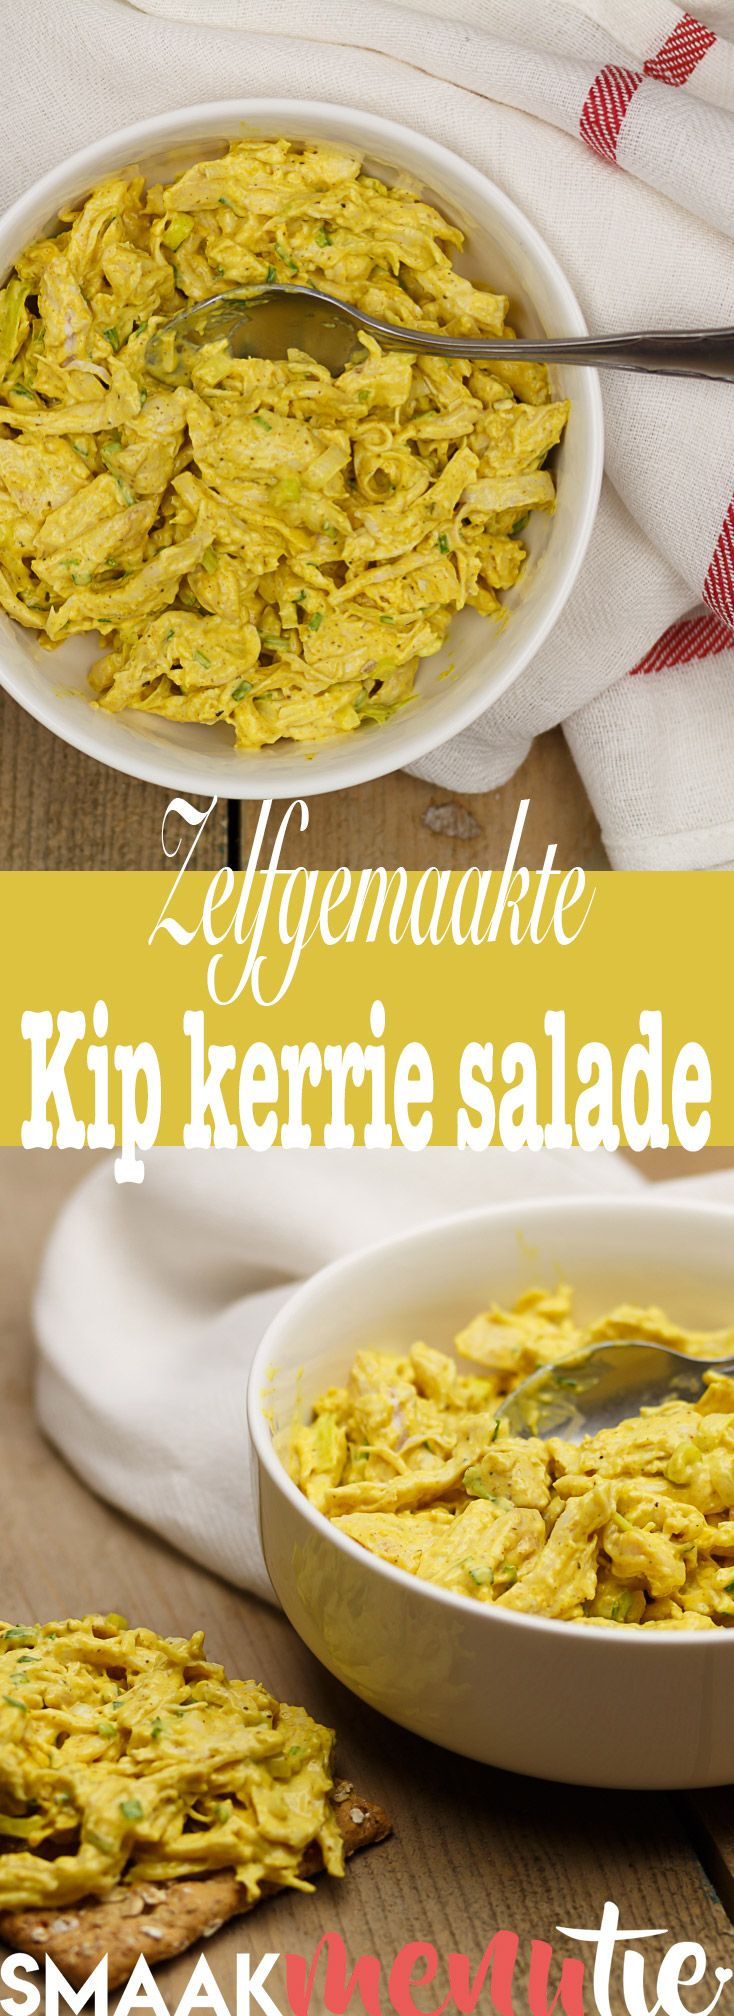 Kip kerrie salade #recept #recipe #lunch #brunch #salad